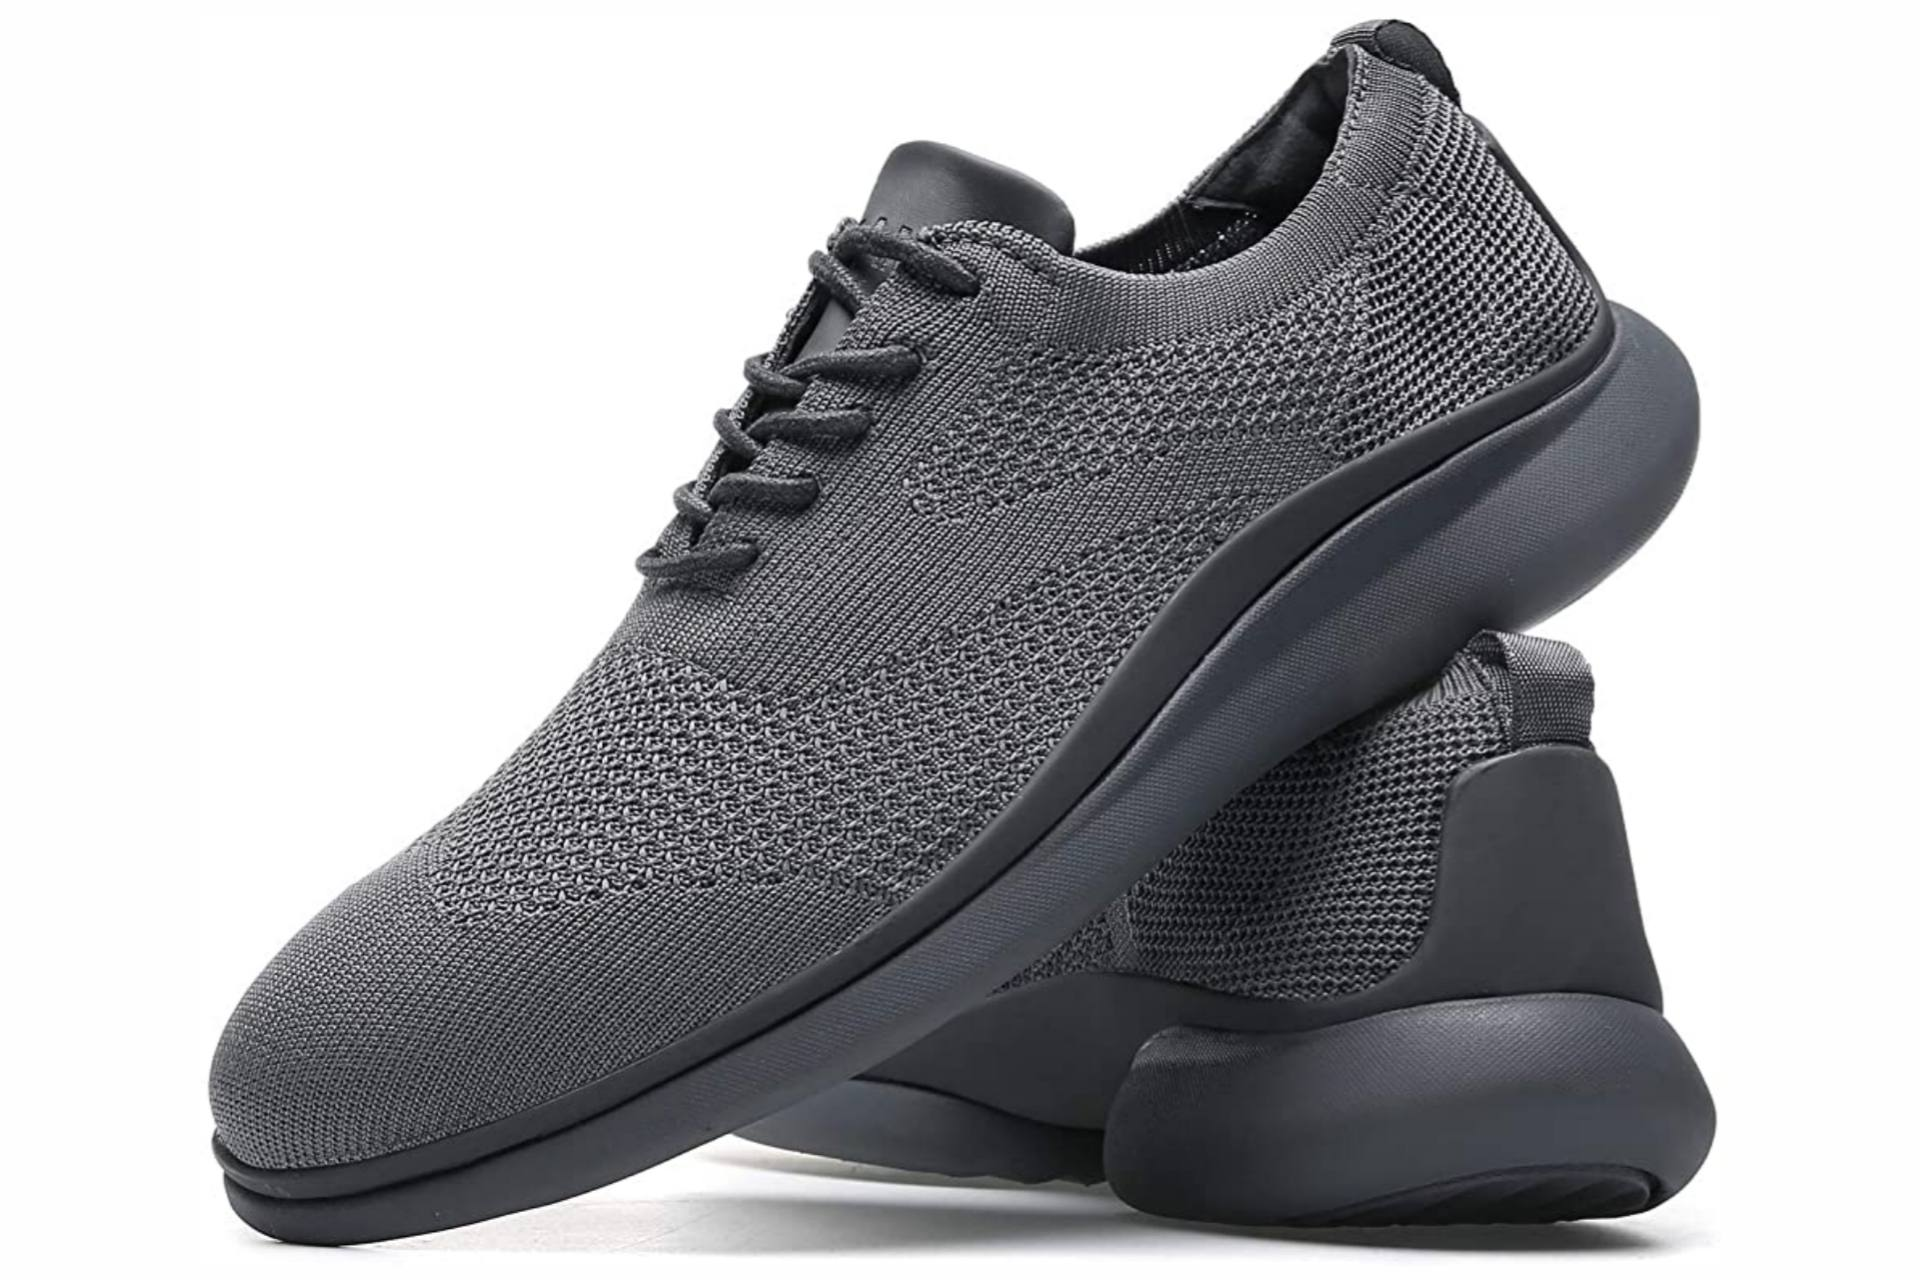 Casual brogue shoes under 50 dollars